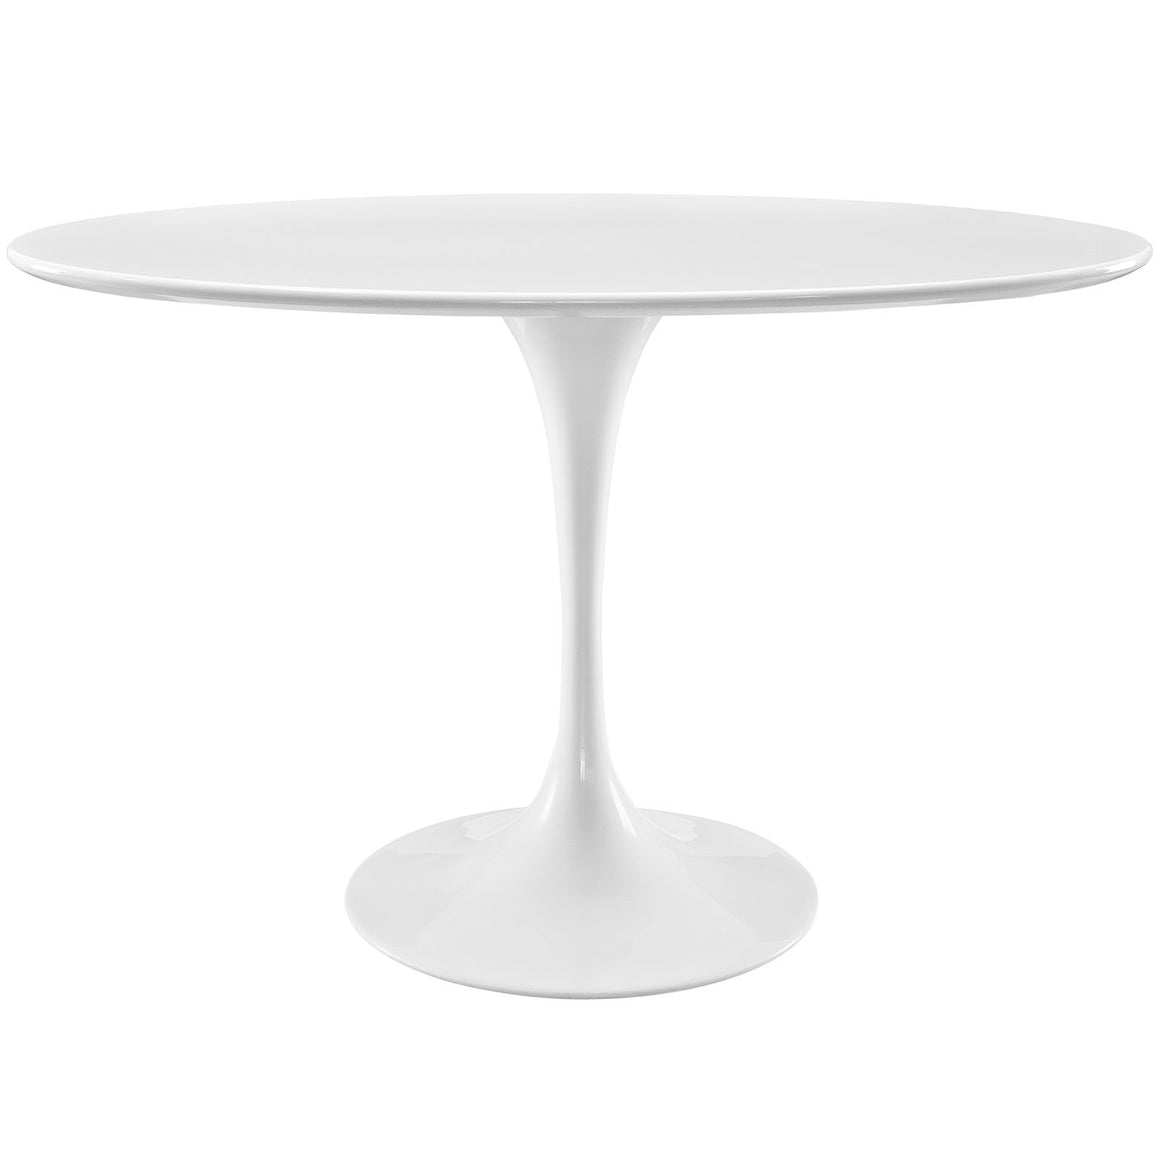 "Lippa 48"" Oval-Shaped Wood Top Dining Table"